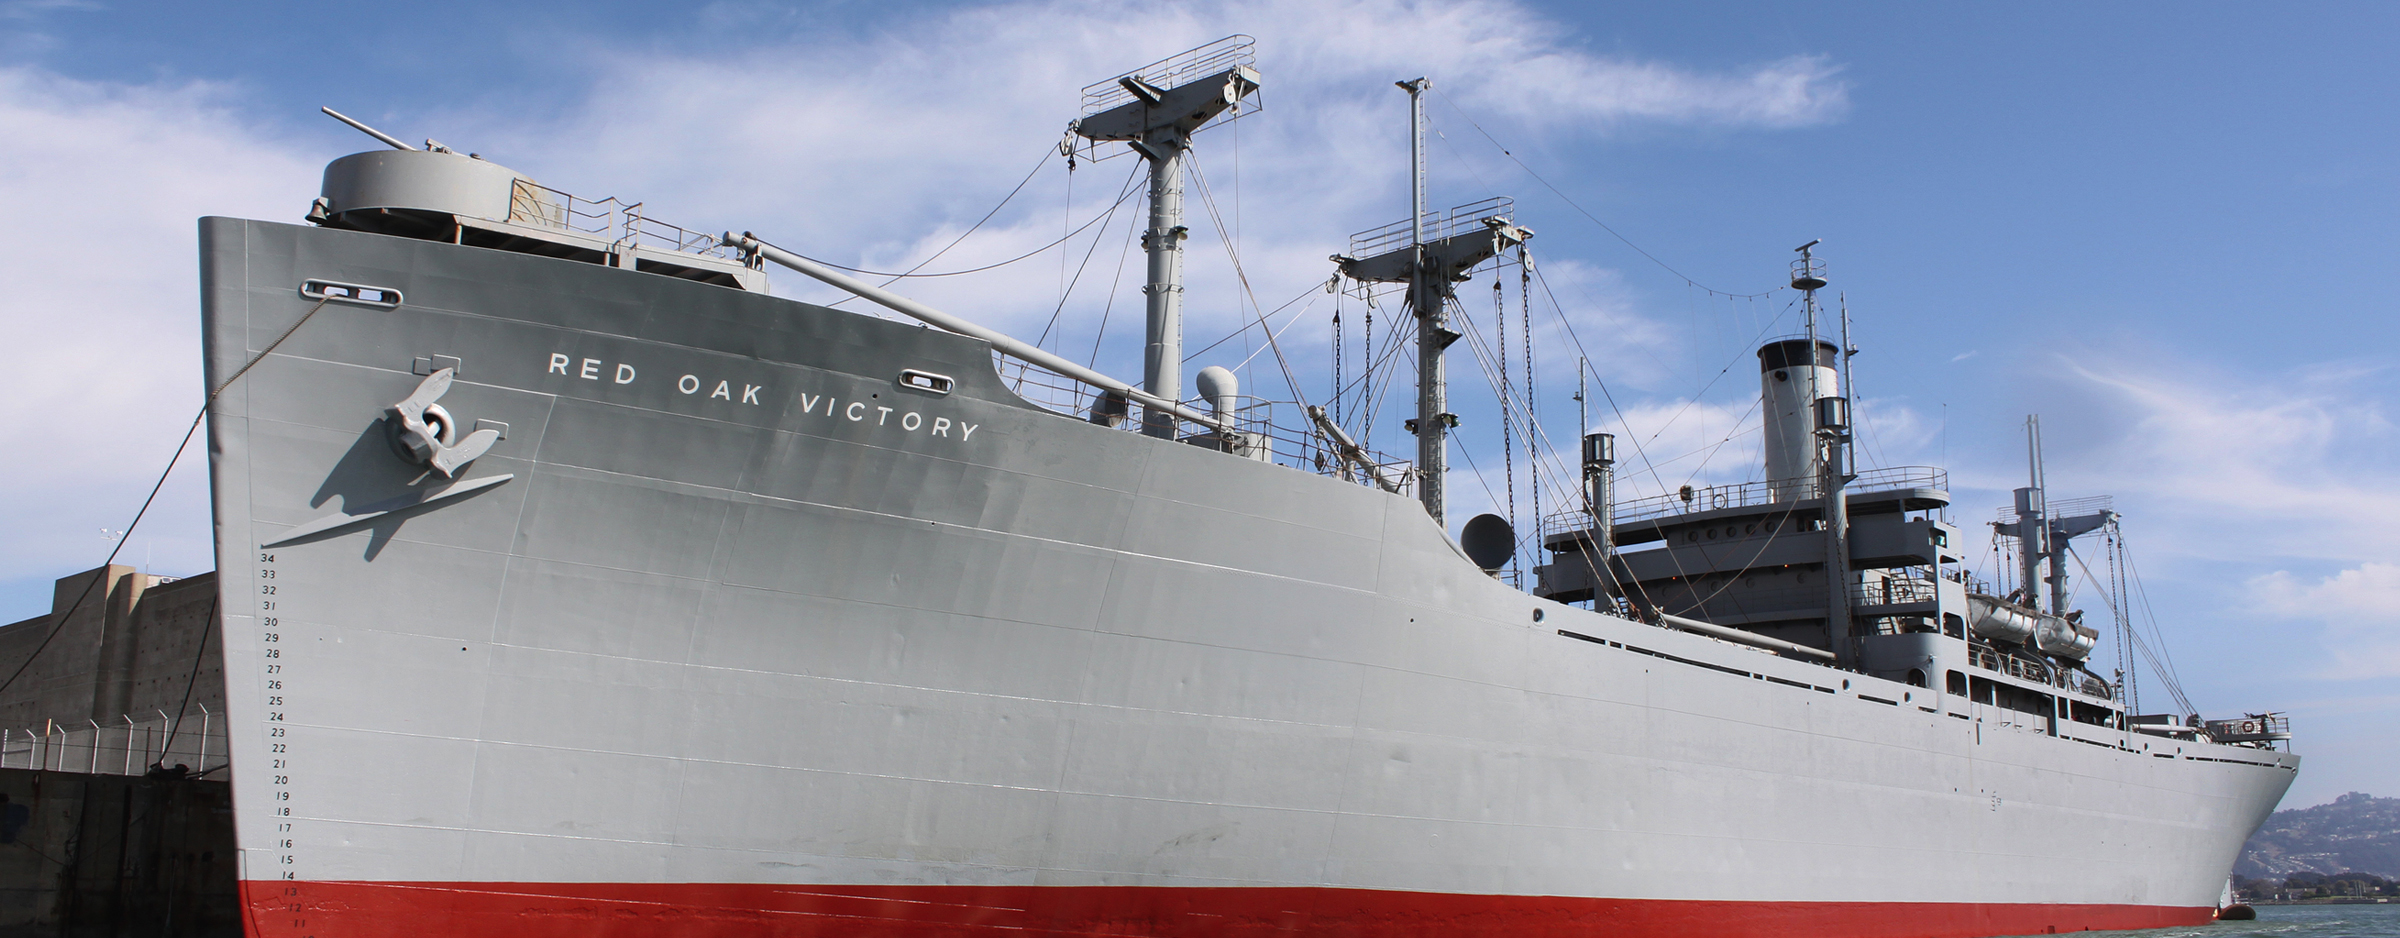 Red Oak Victory Ship 1